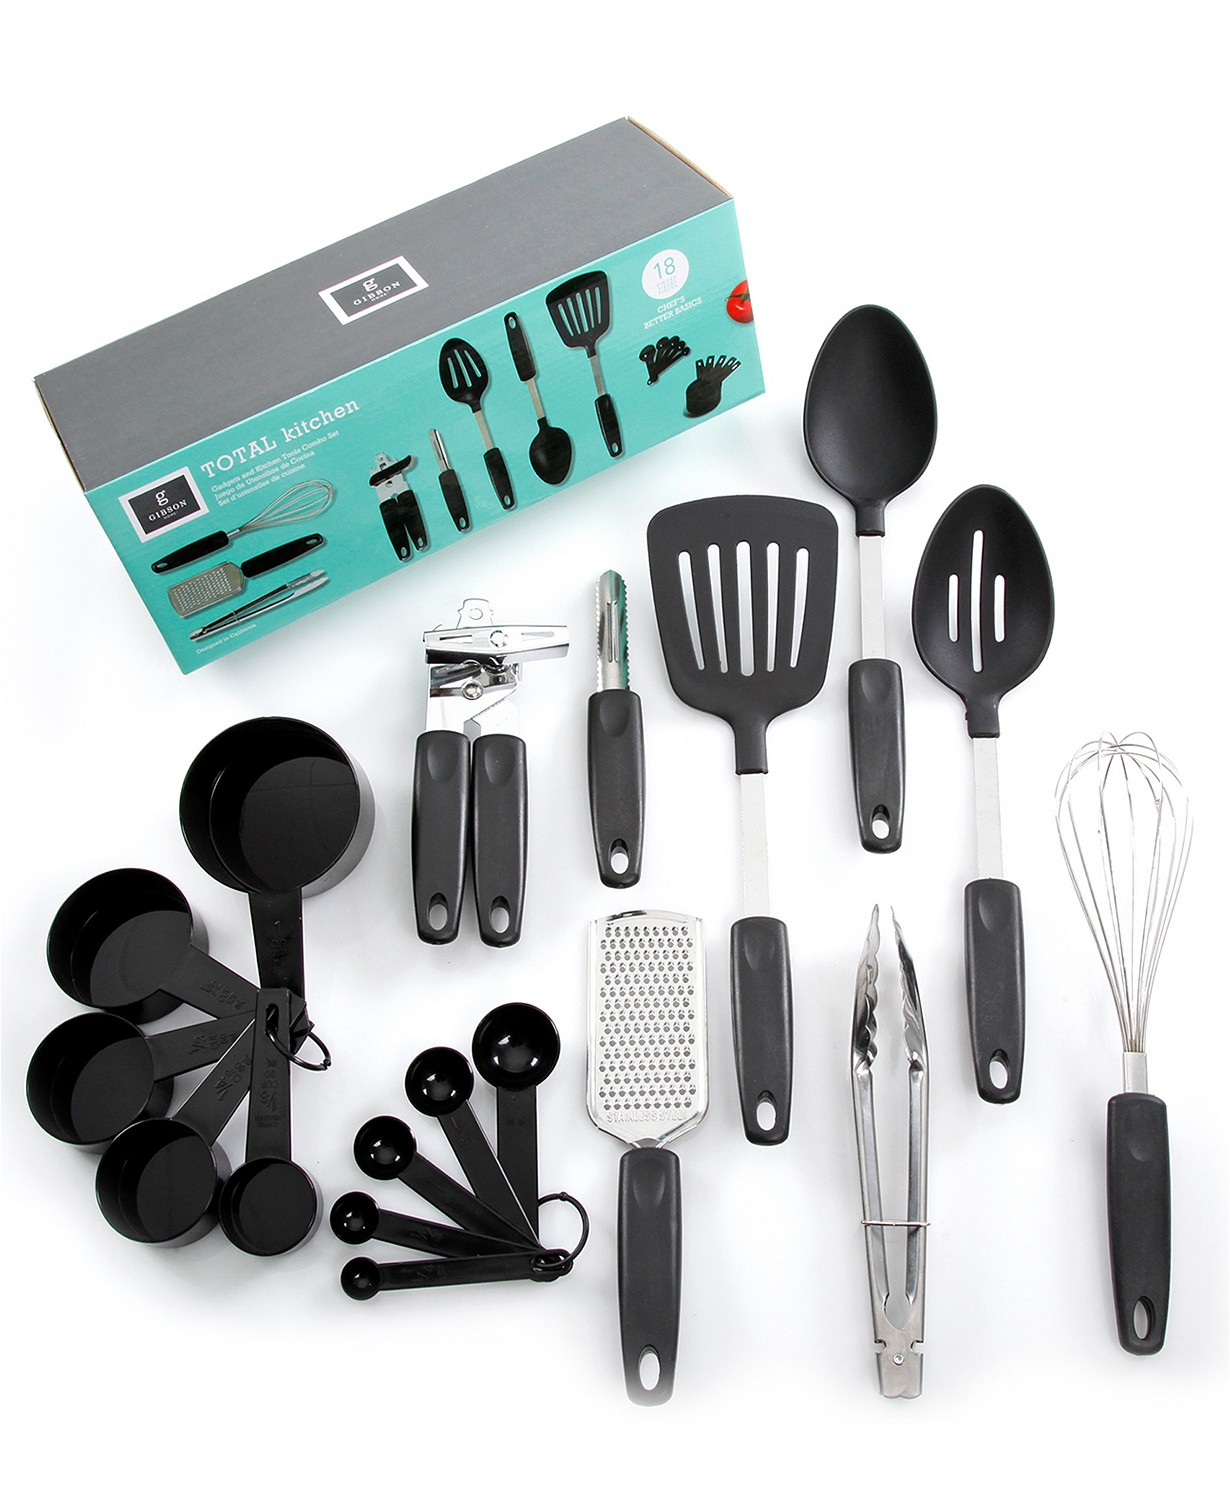 18-Piece Gadgets and Tools Kitchen Combo Set! .99 at Macy's with code: FRIEND